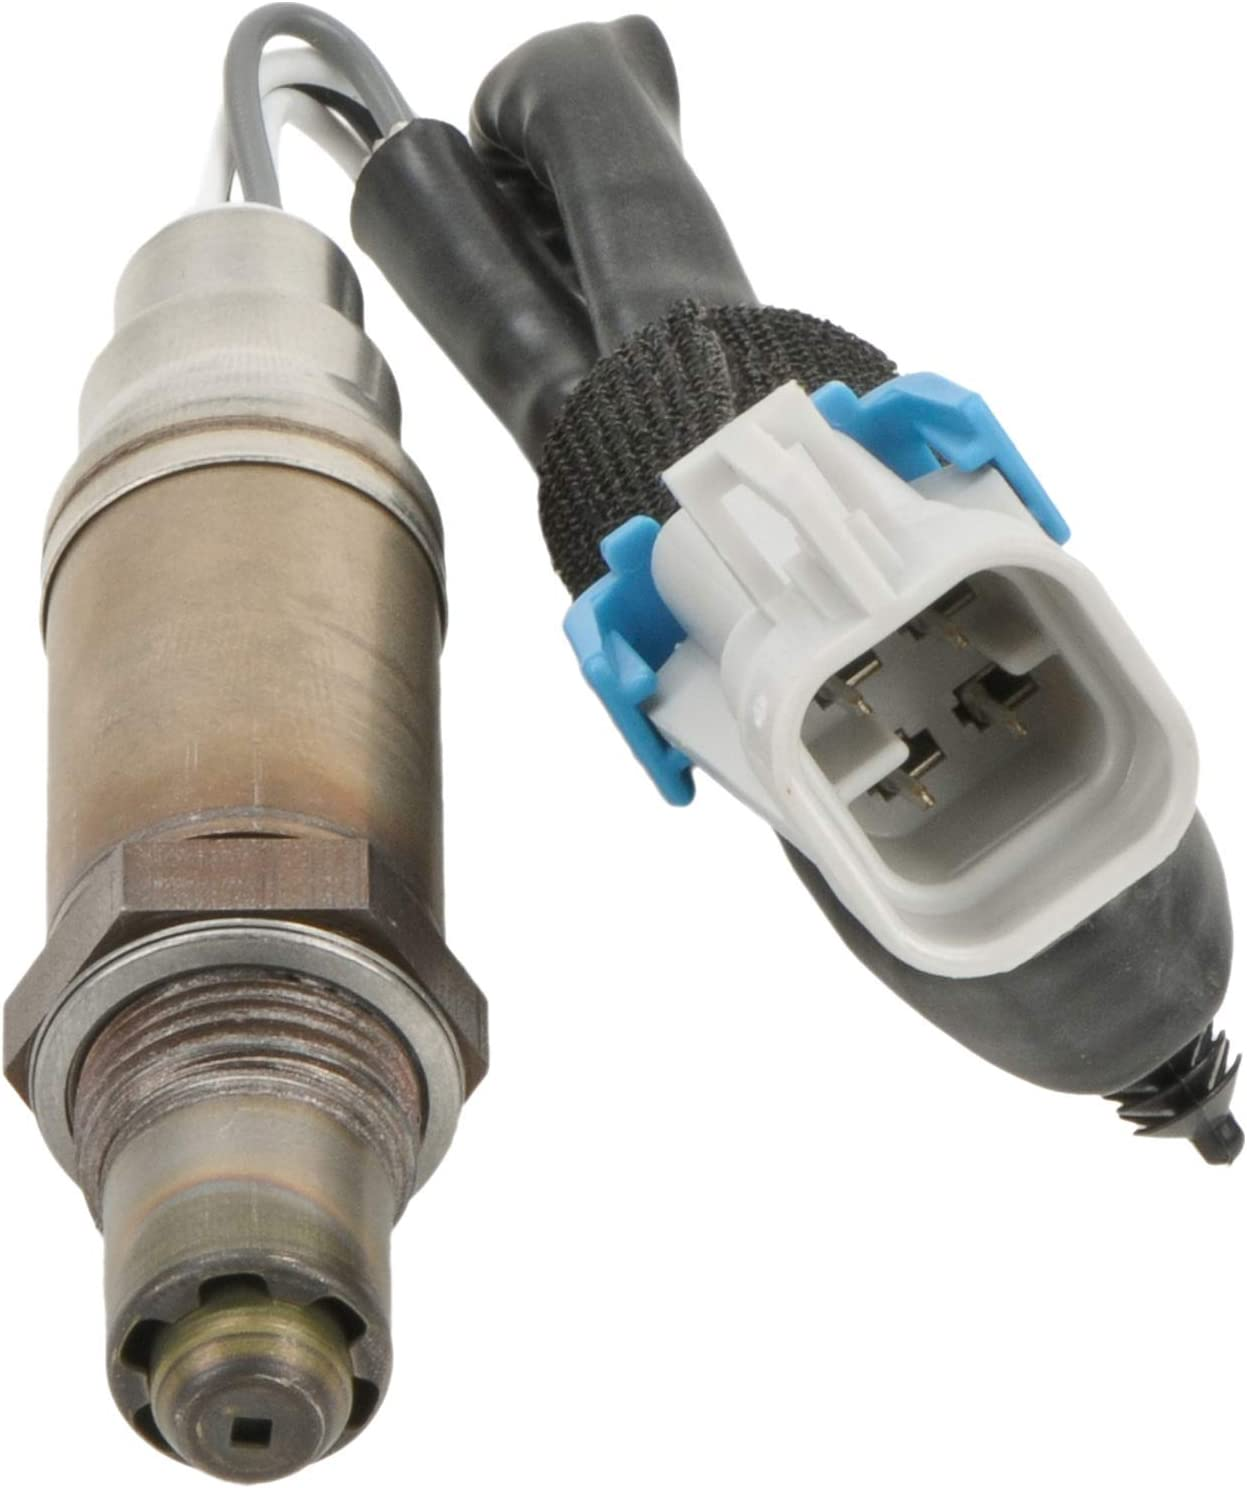 One New Bosch Oxygen Sensor 15703 for Buick /& more